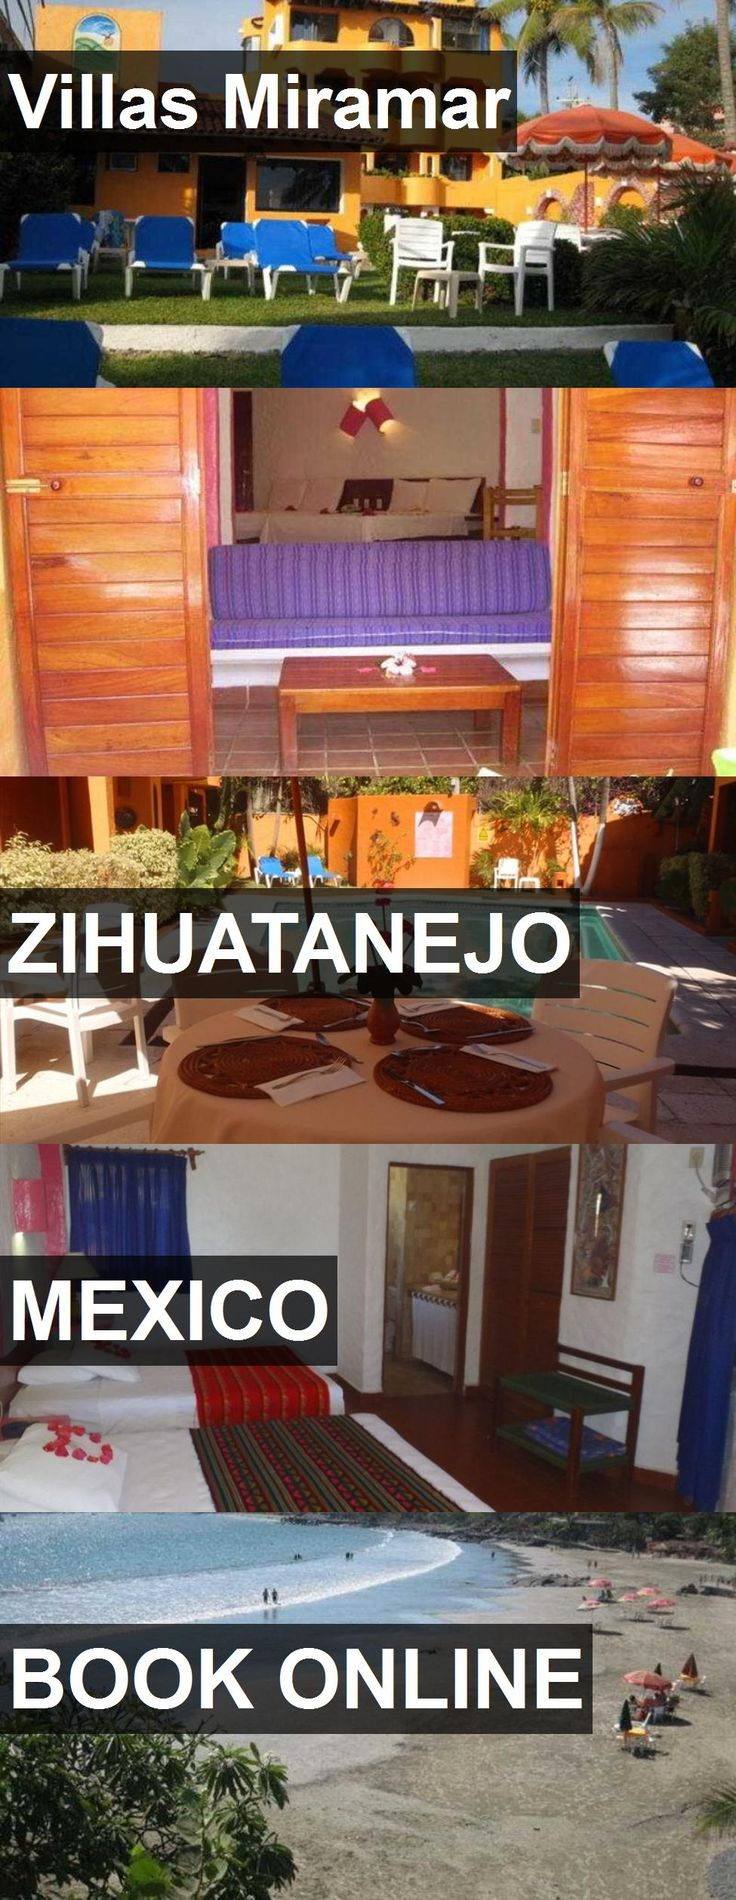 Hotel Villas Miramar in Zihuatanejo, Mexico. For more information, photos, reviews and best prices please follow the link. #Mexico #Zihuatanejo #hotel #travel #vacation